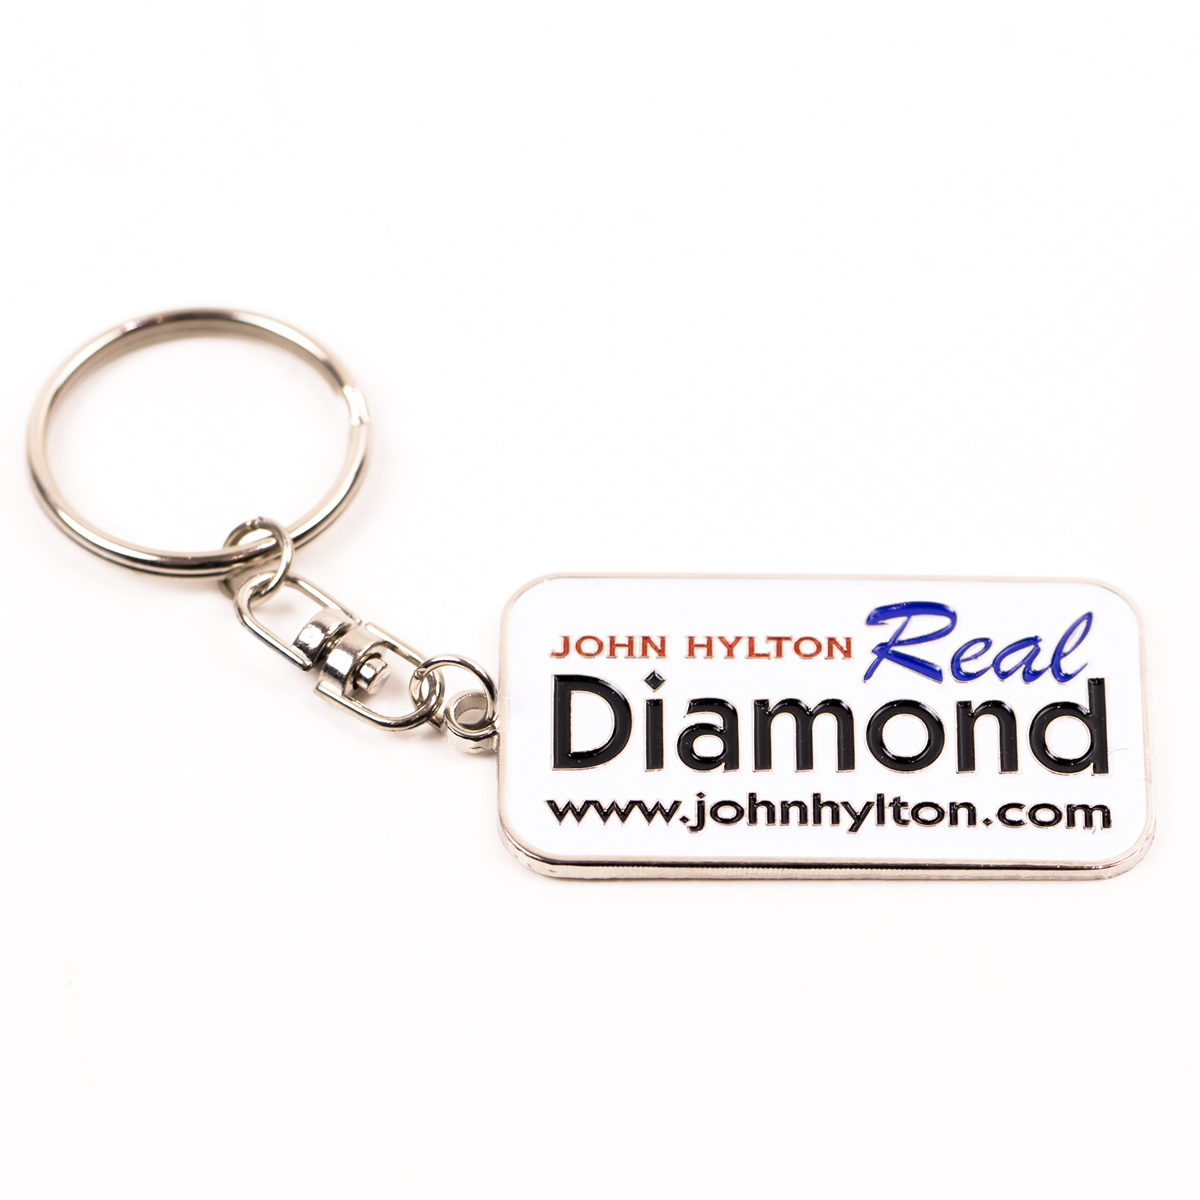 Personalised Name Metal Keychains - i4c Publicity Ltd